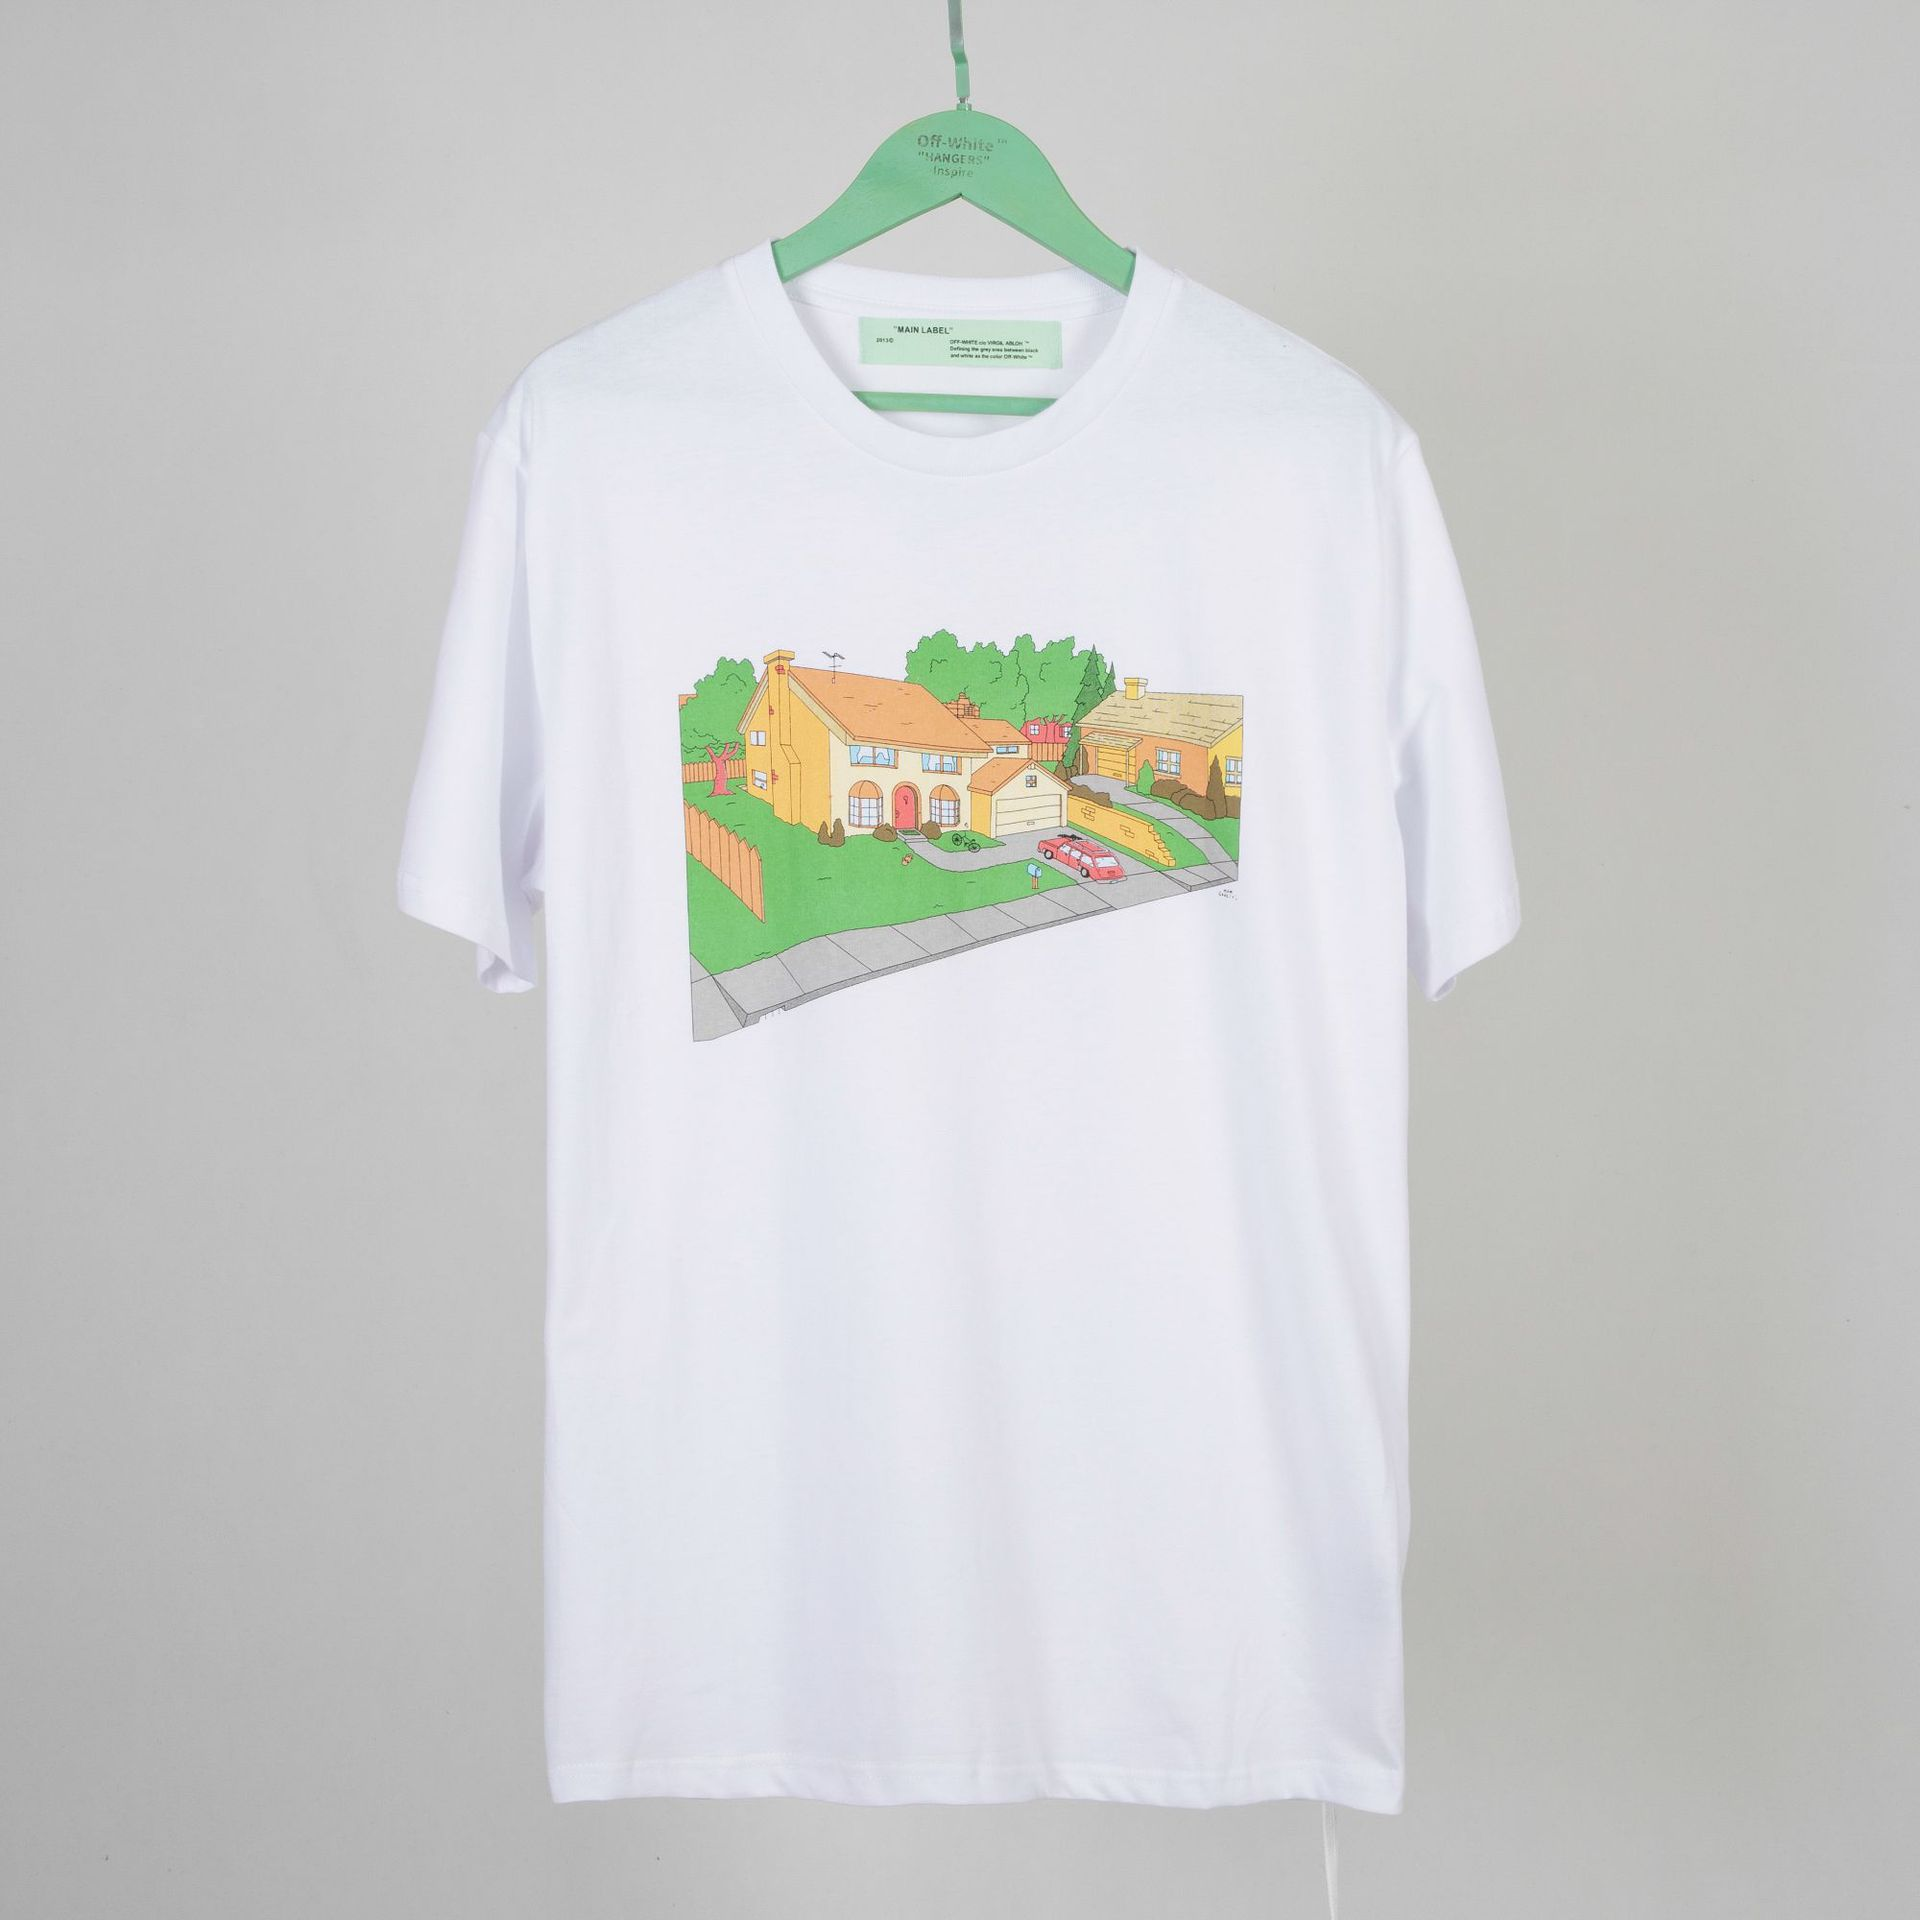 Ow Popular Brand Off White2019 Spring And Summer Simpson Garden Couples Men And Women Celebrity Style Pure Cotton Short Sleeve M